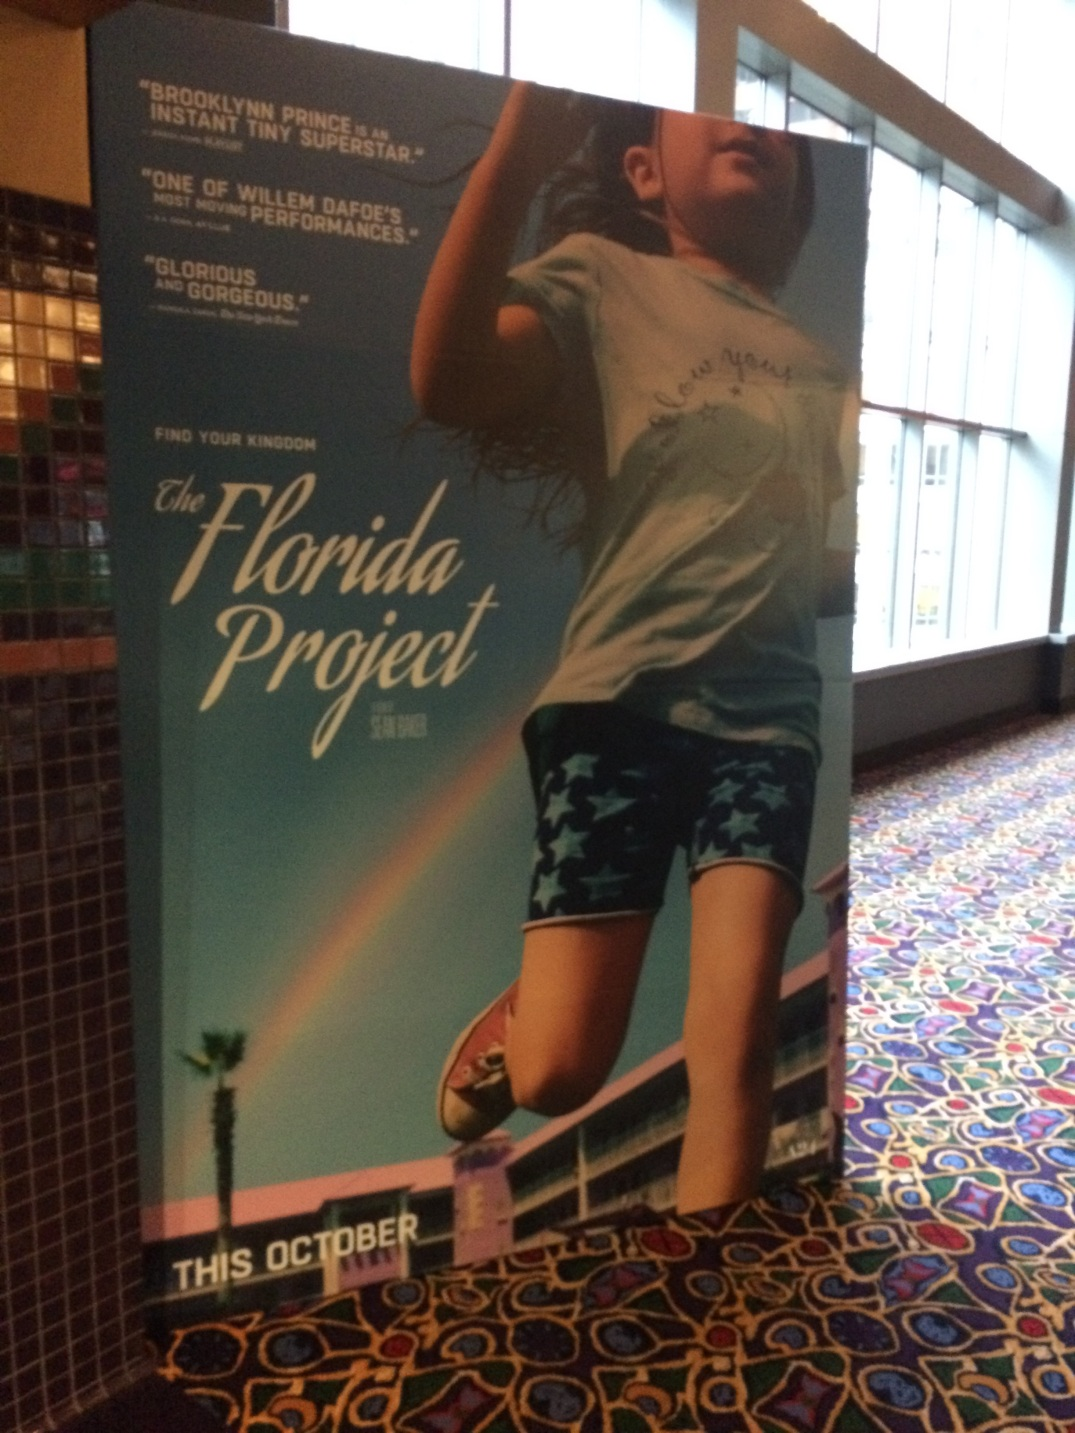 Florida Project Screening-Lobby Poster